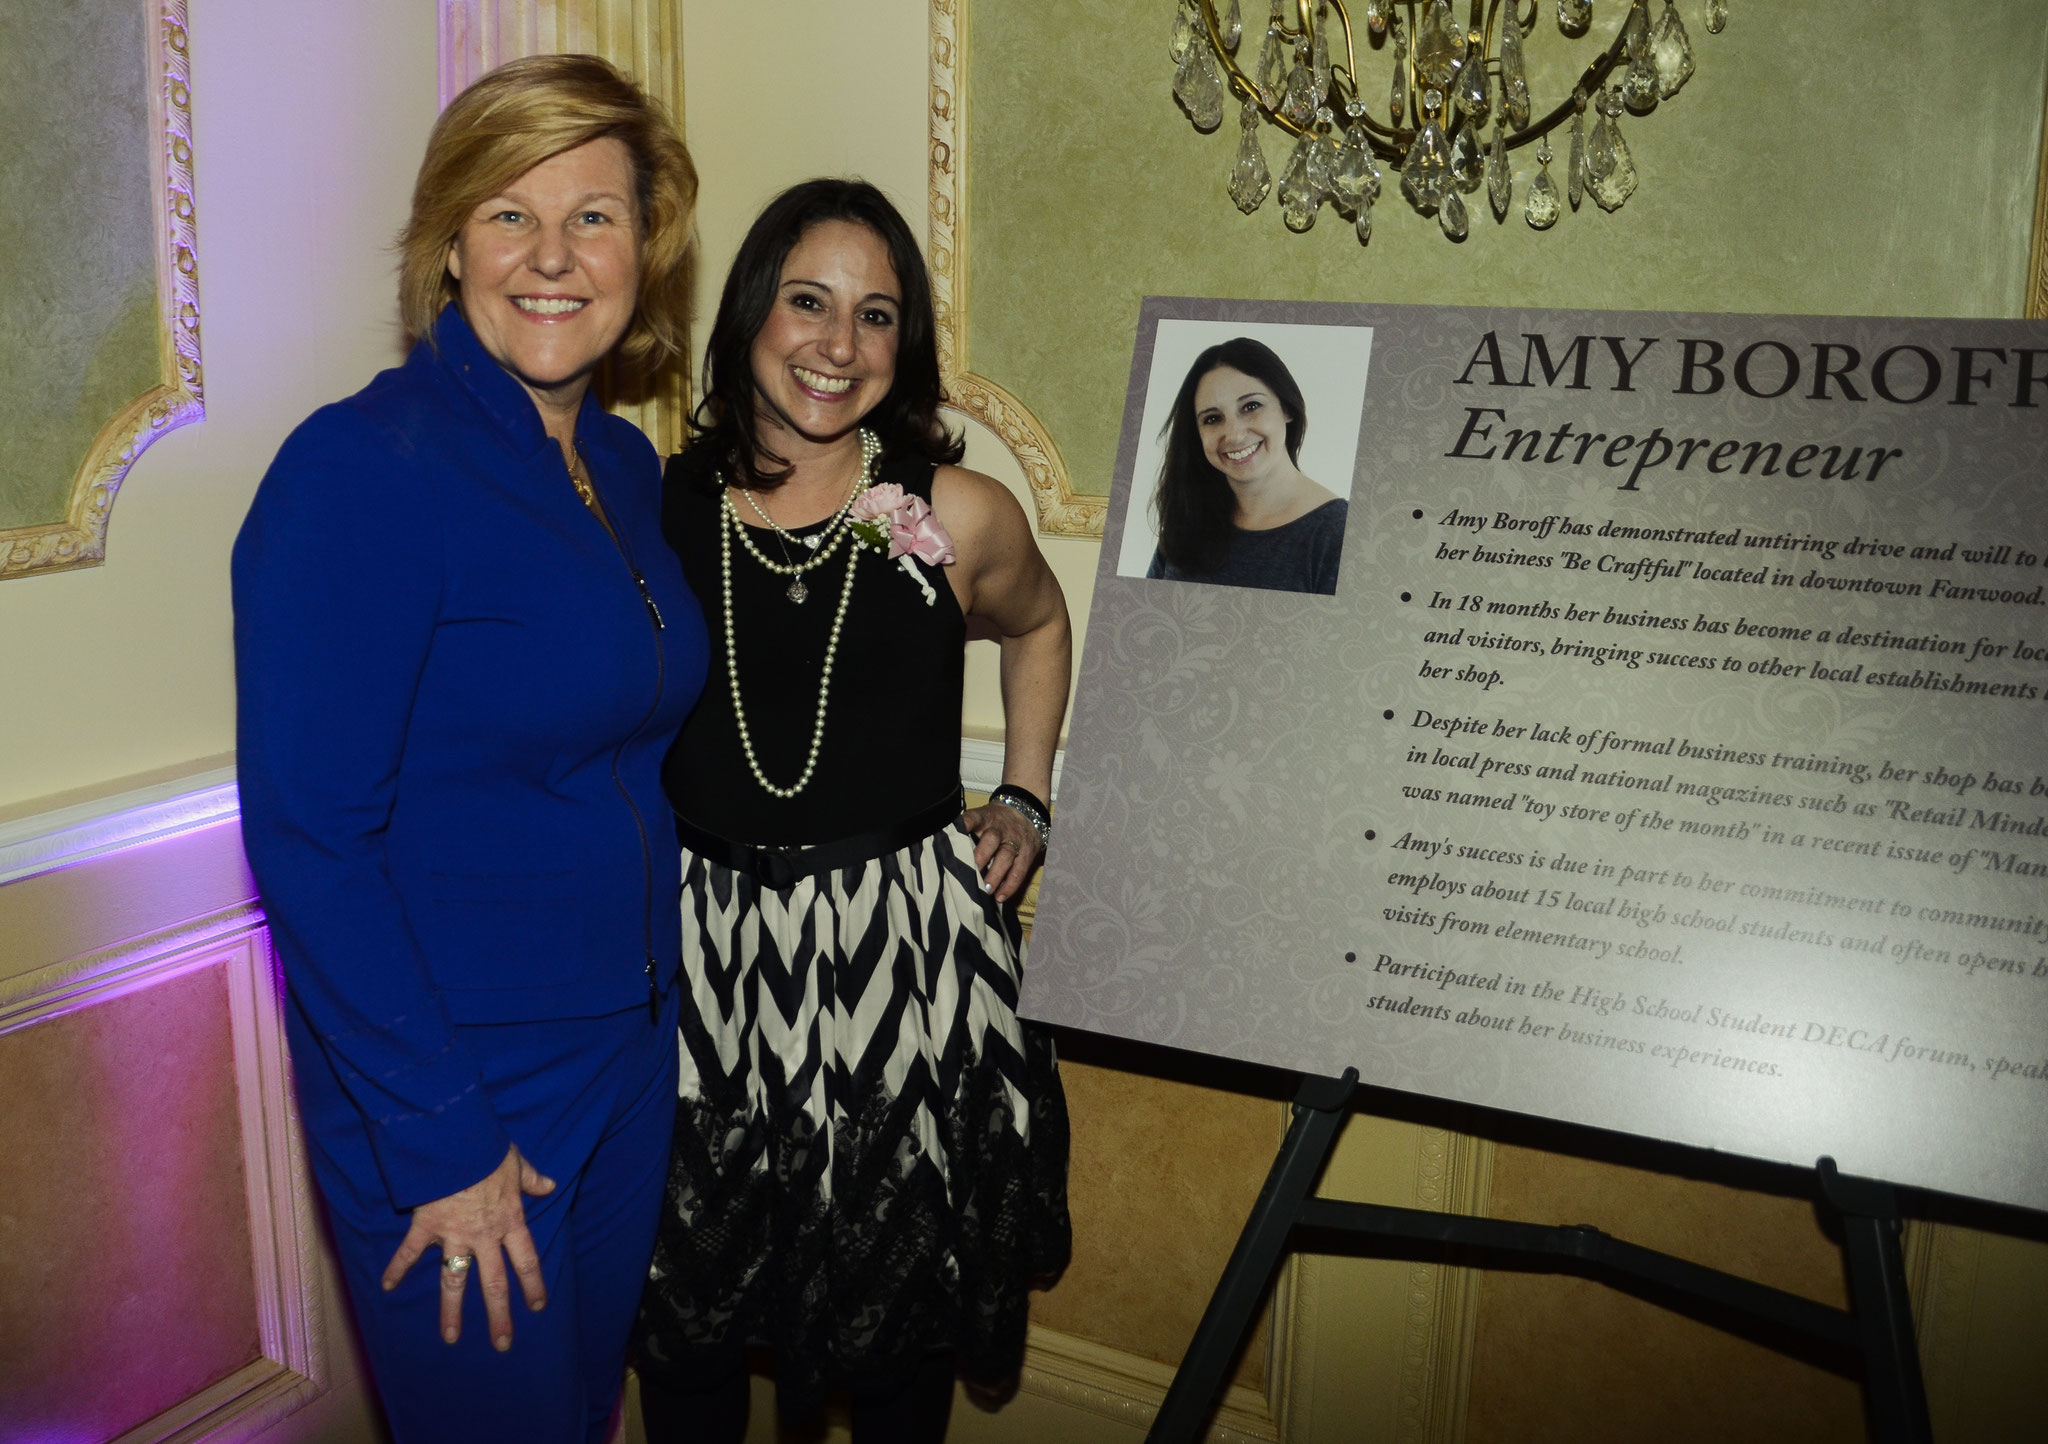 Colleen and Amy, recipient of Woman of Excellence Award